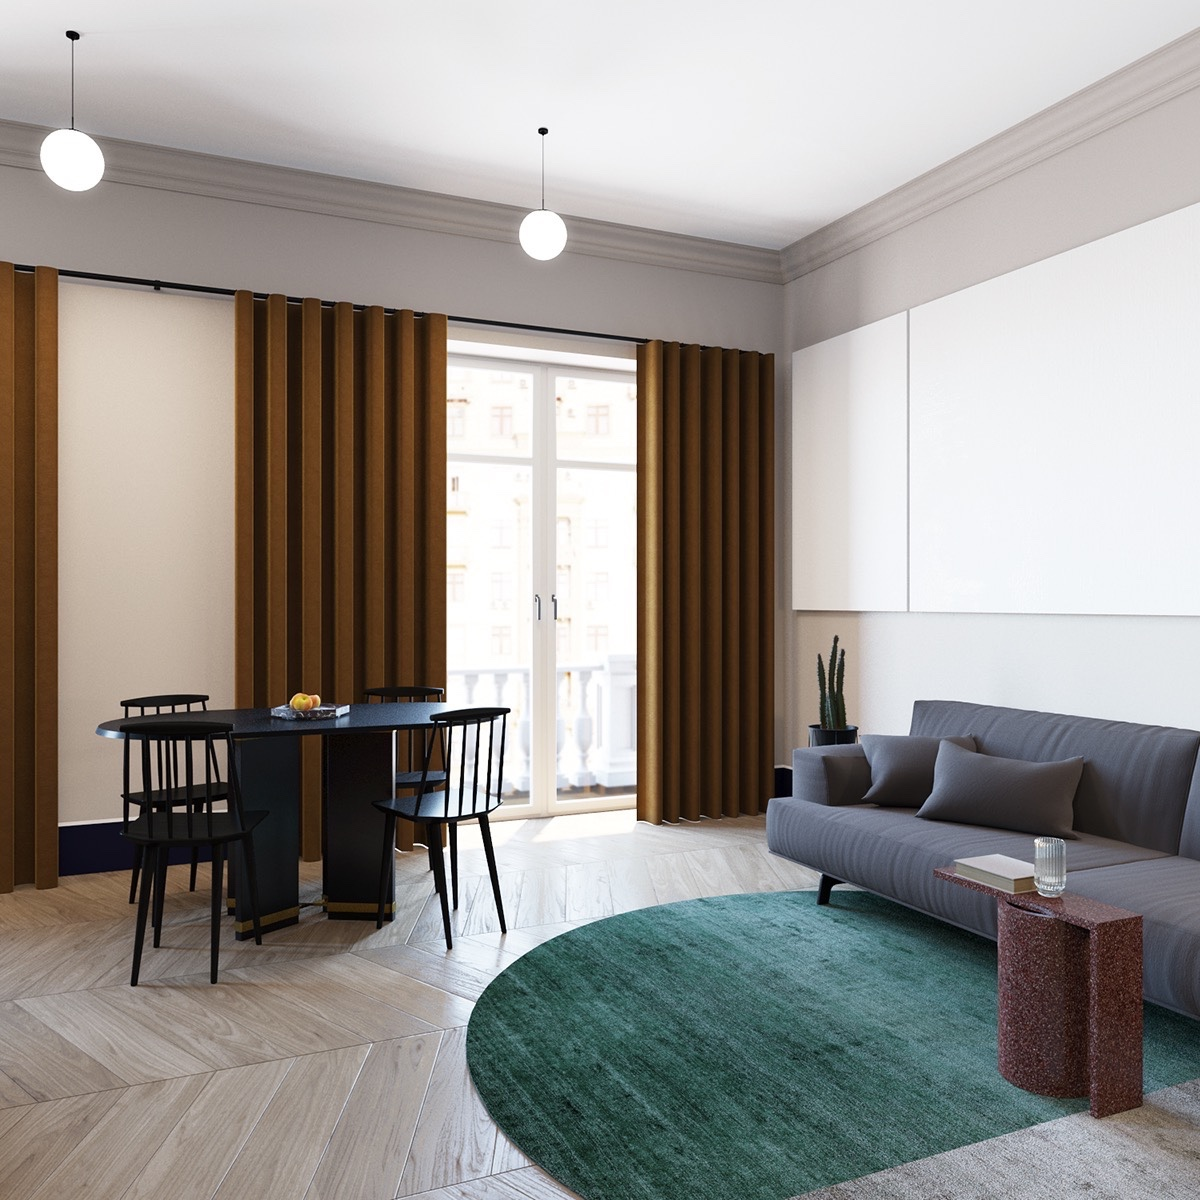 Apartment Design 600 Square Feet 2 well-rounded home designs under 600 square feet (includes layout)